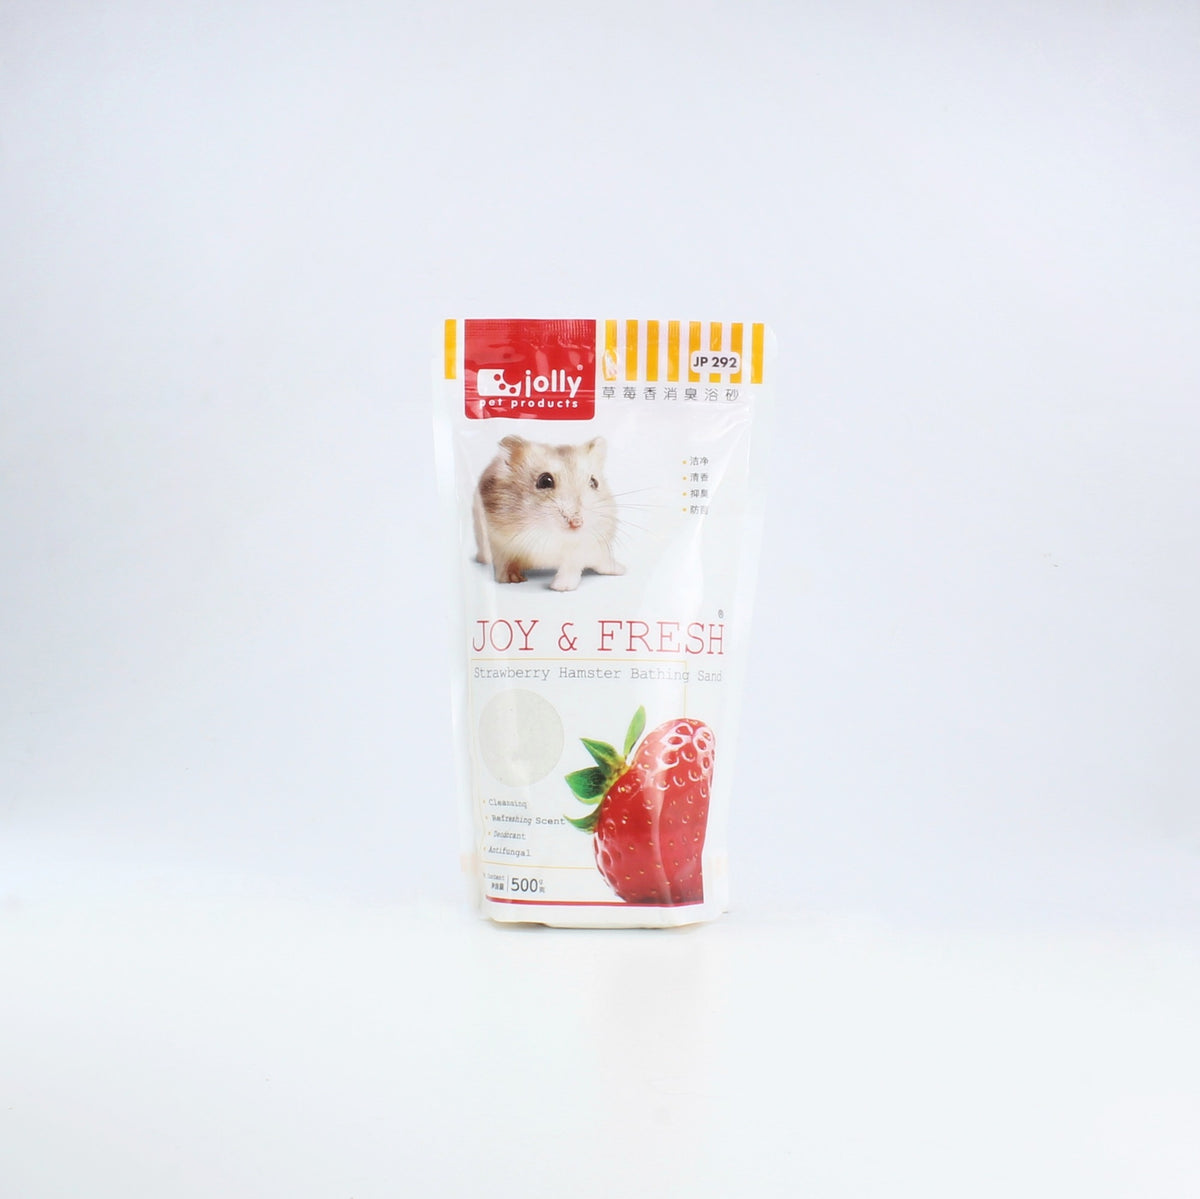 Jolly Scented Hamster Bath Sand